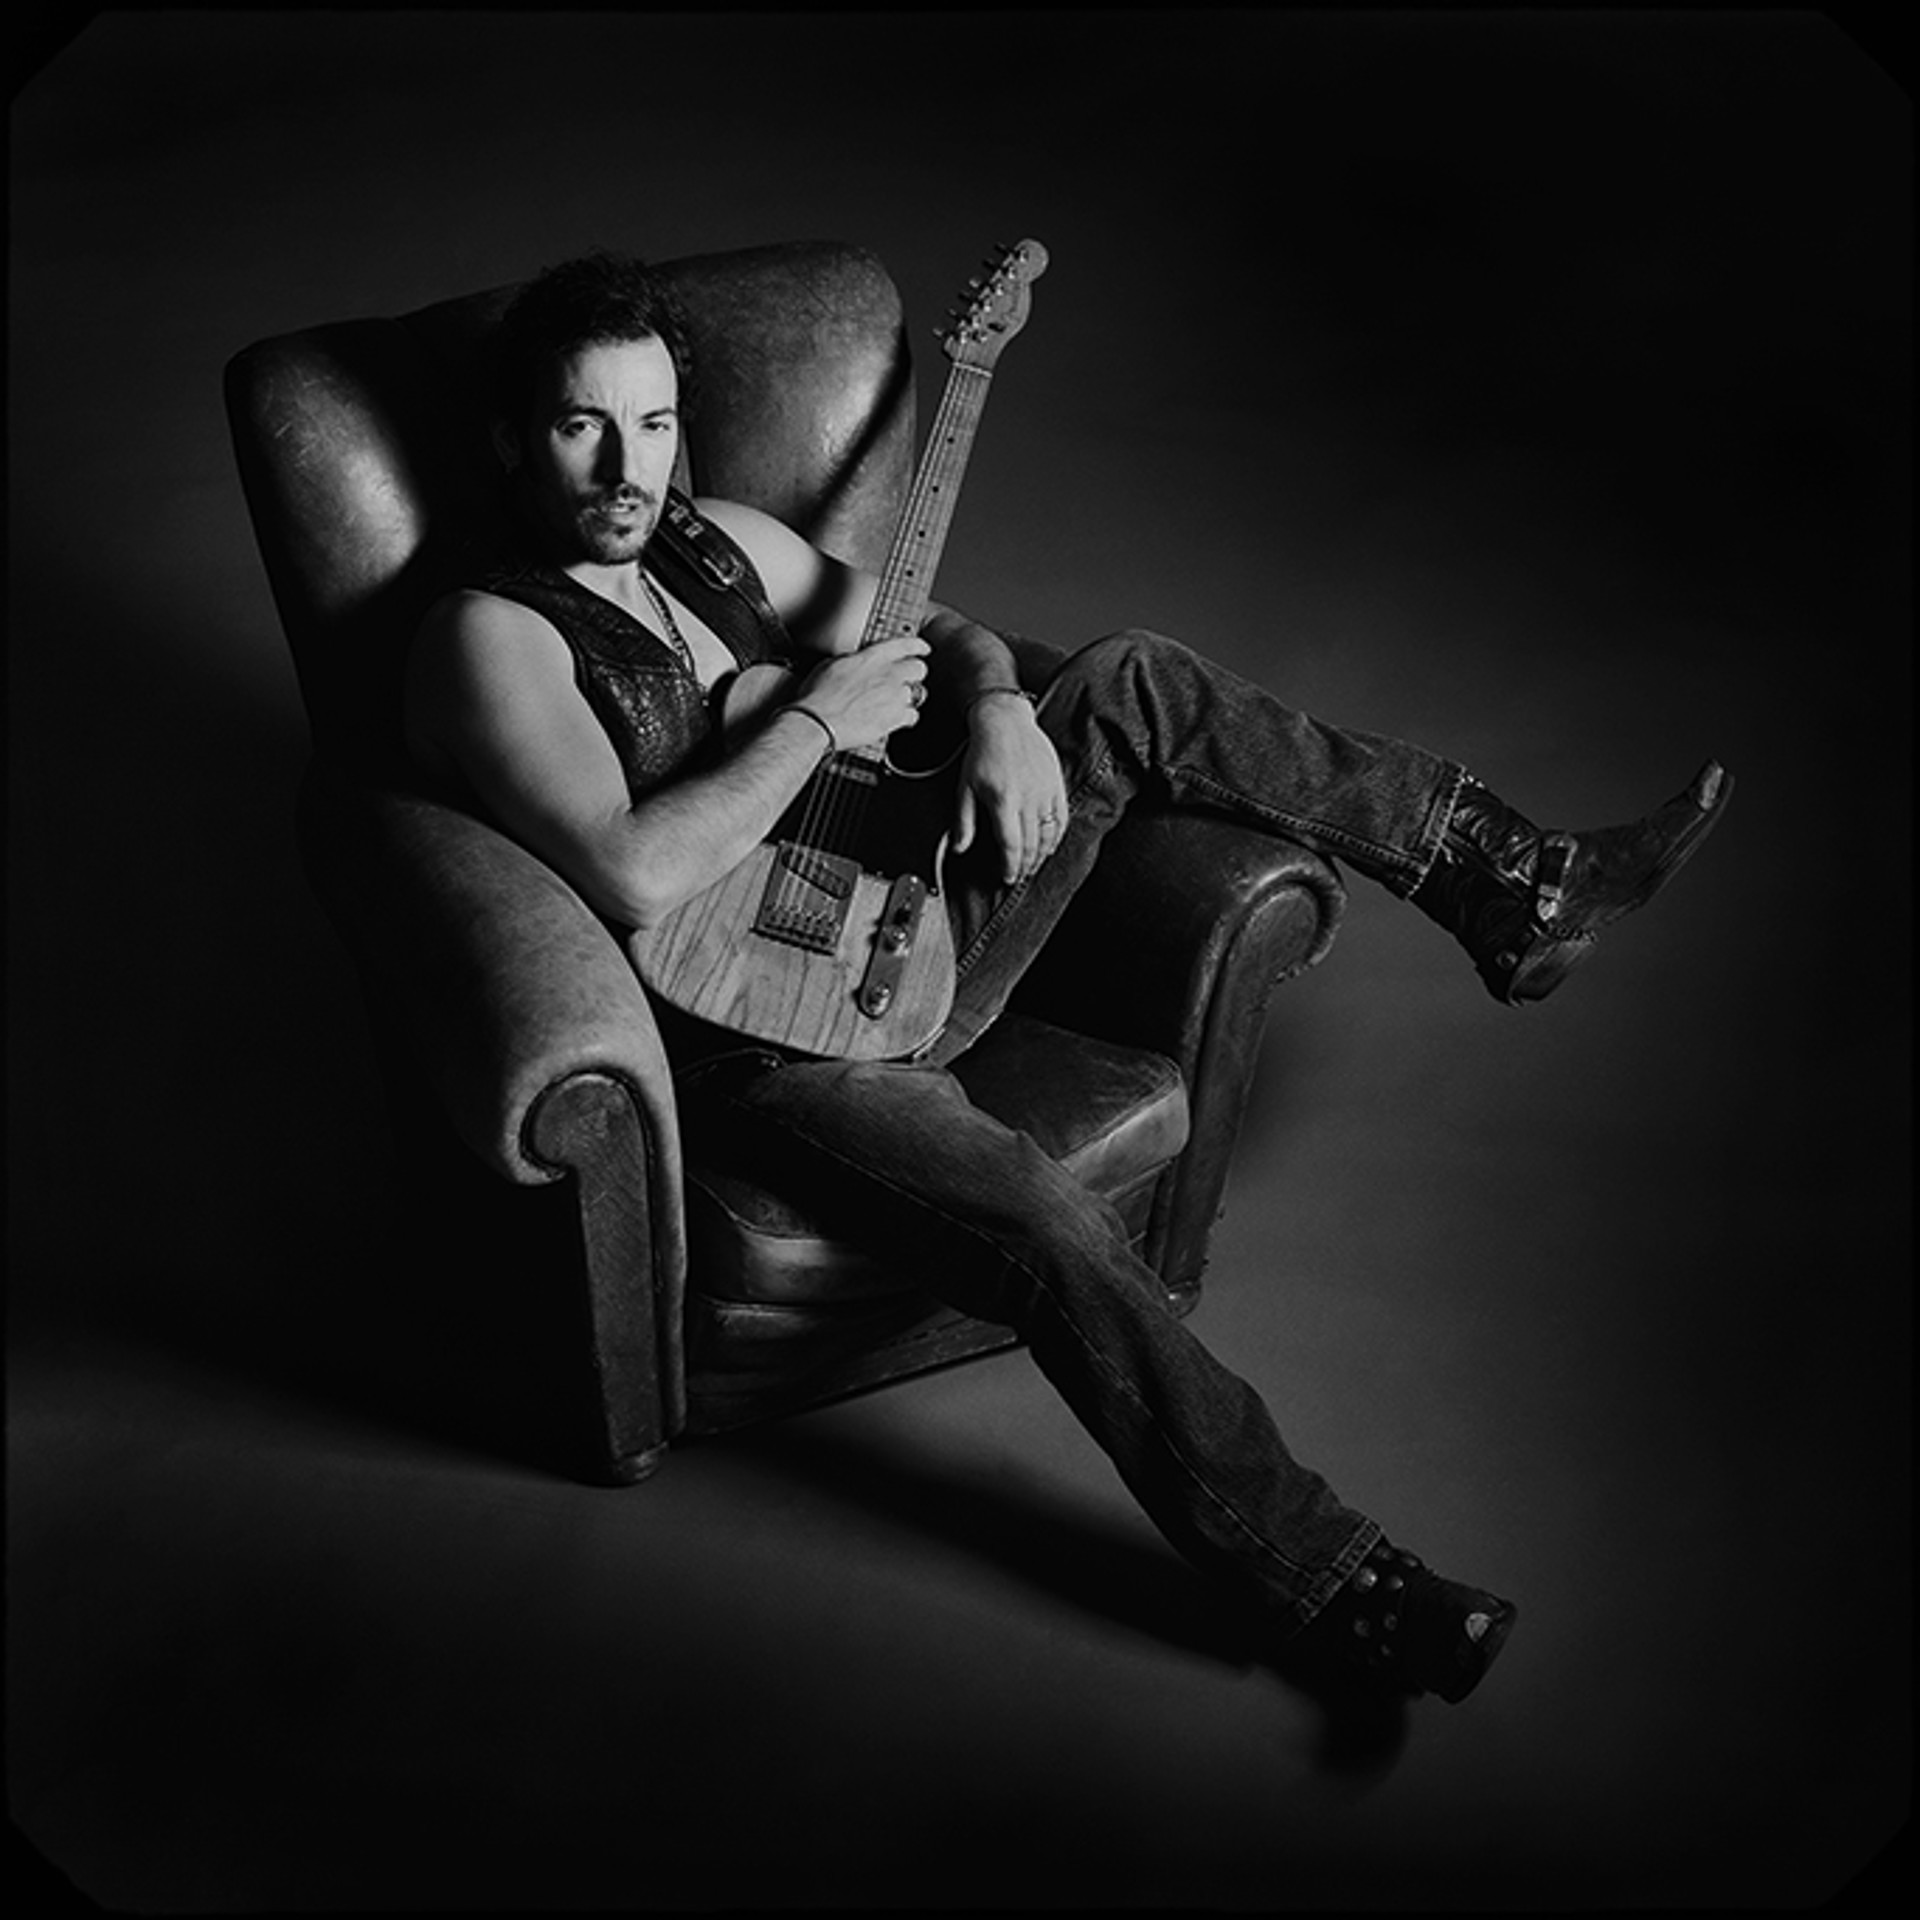 91152 Bruce Springsteen In Chair Polaroid F22 BW by Timothy White